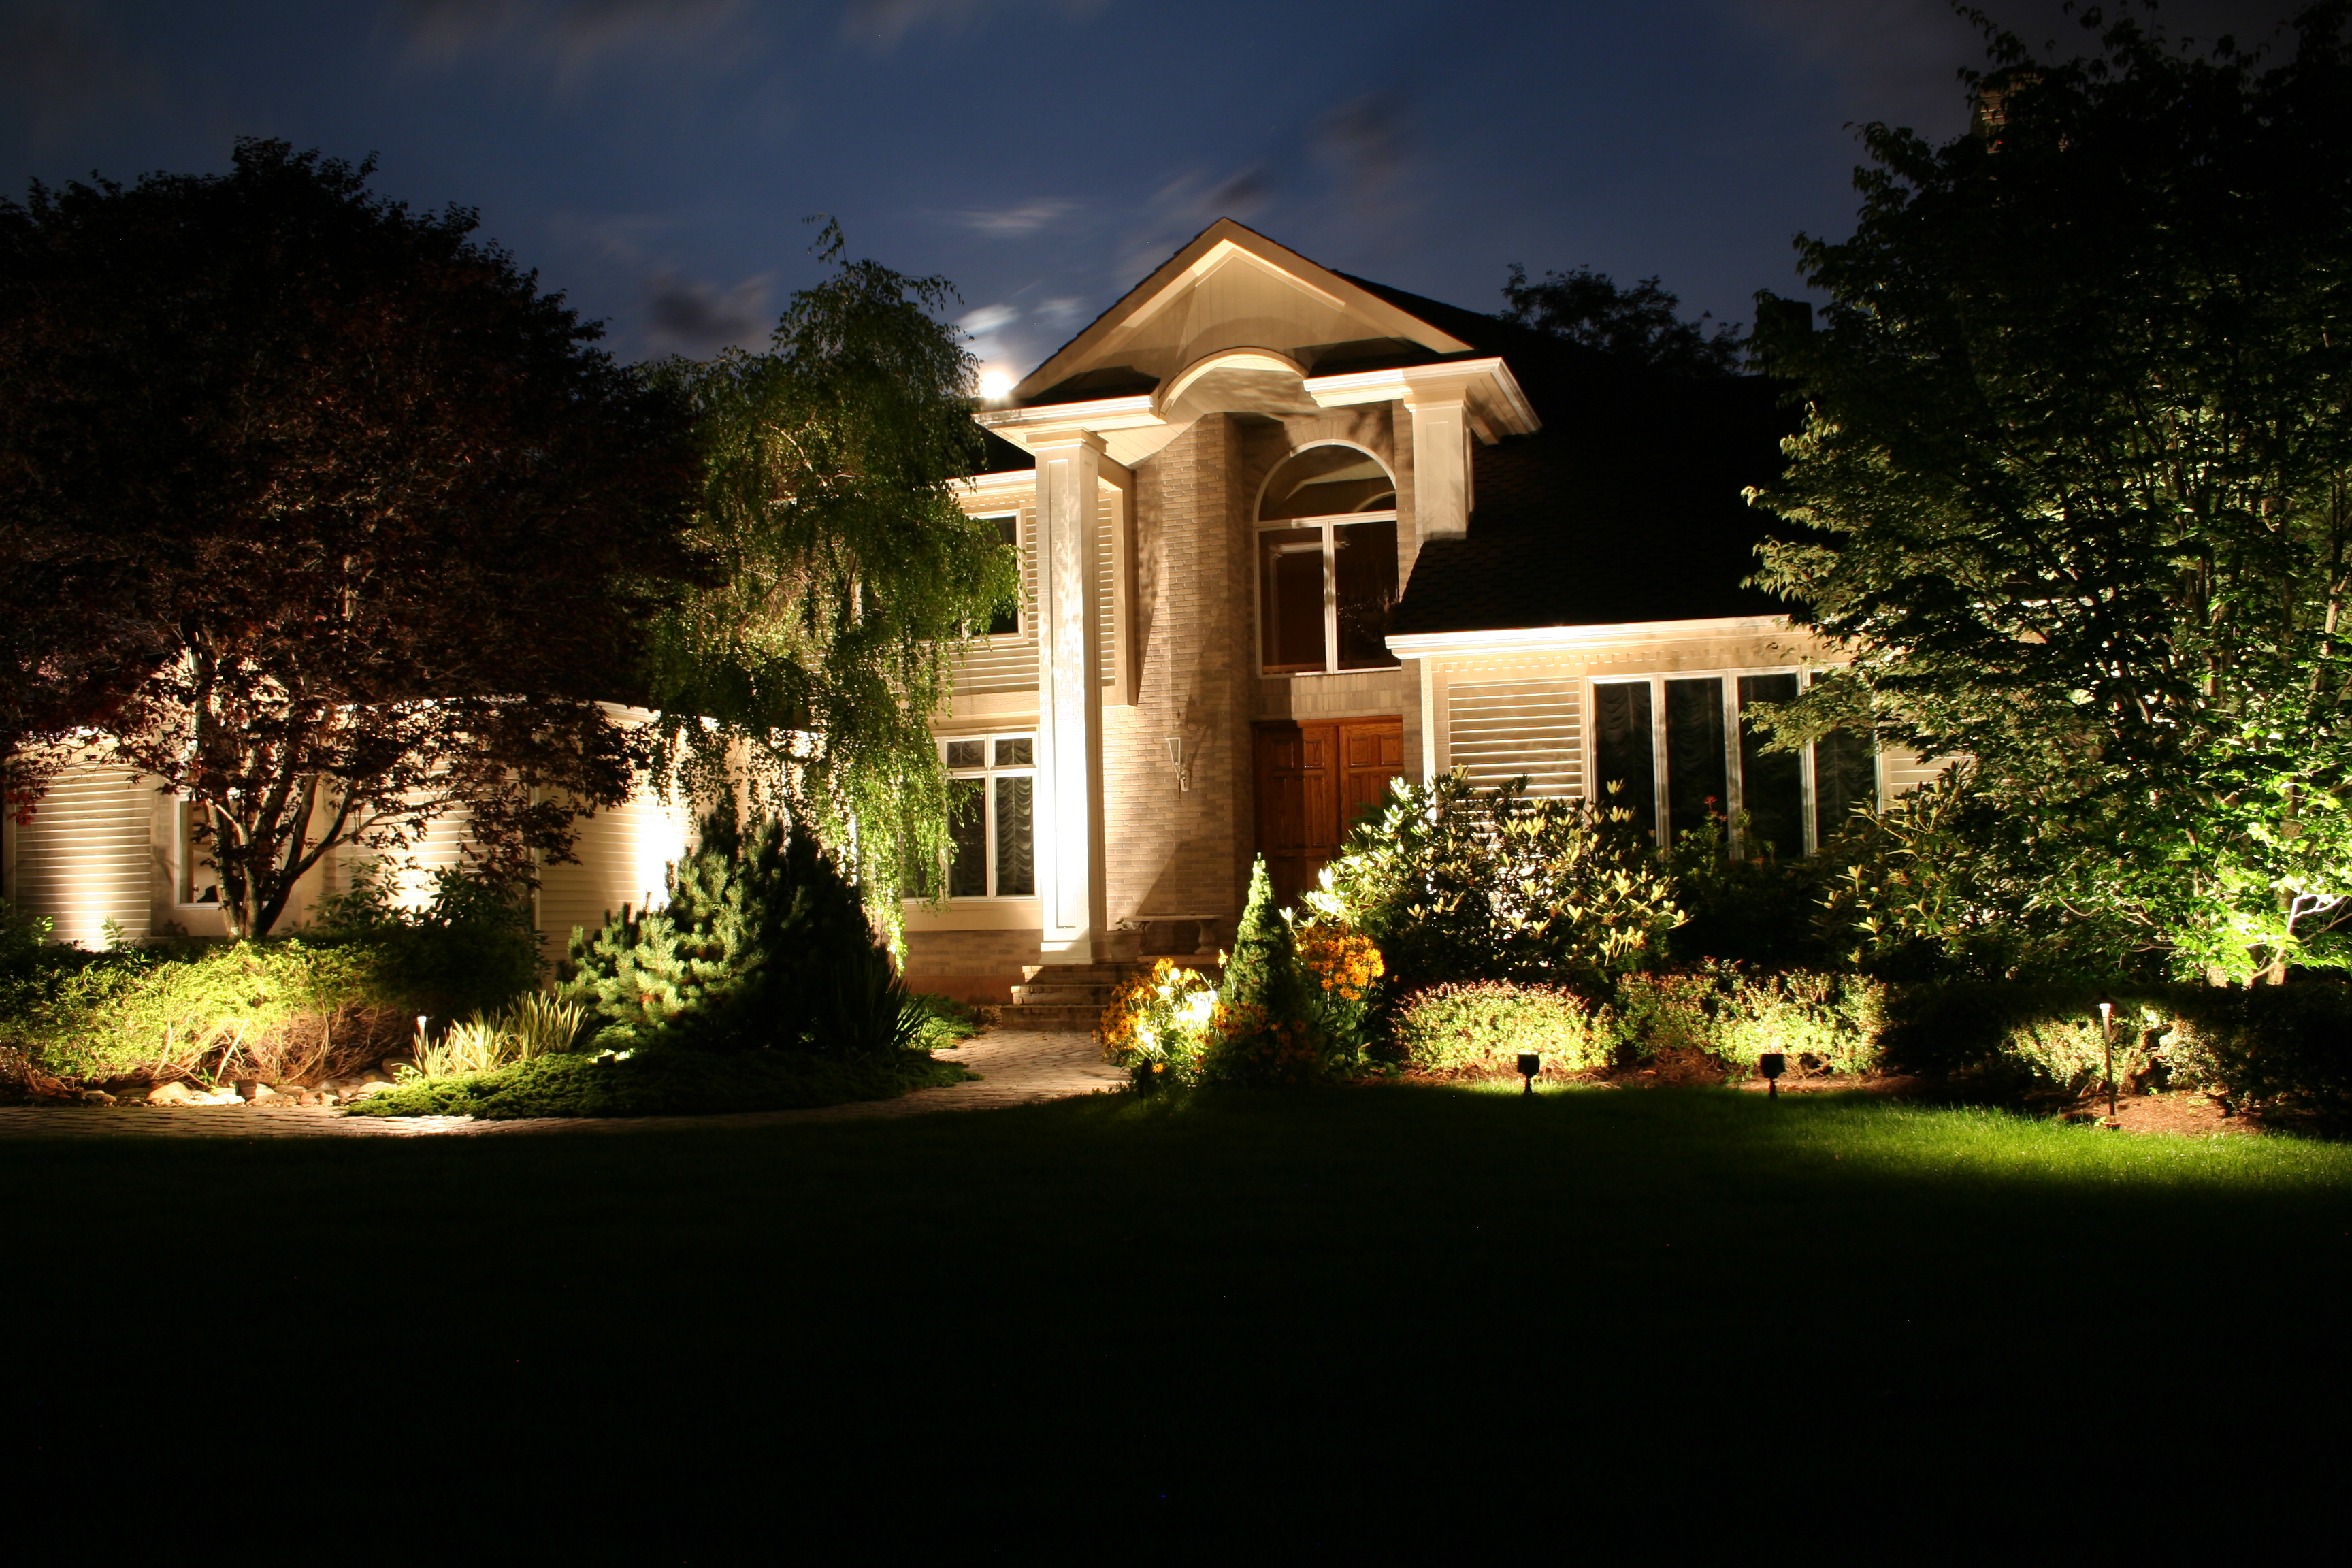 Preferred properties landscape lighting designer shows us for Exterior lighting design